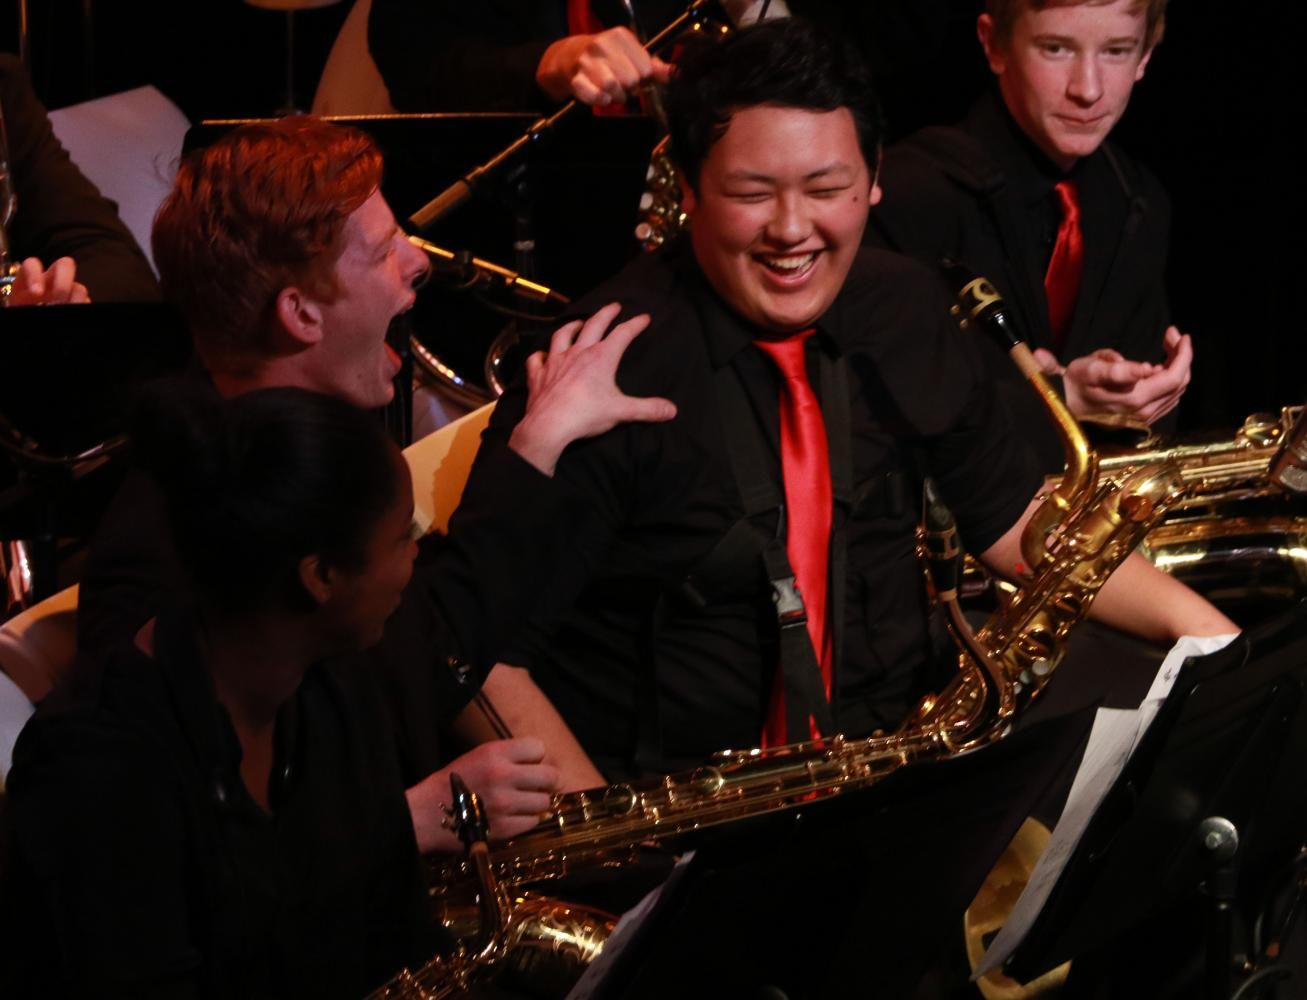 Max Knibbe cheers as Simon Zombor's name is called by director Darin Faul. Each member of the band, especially the seniors, were celebrated at Jazz Alley.